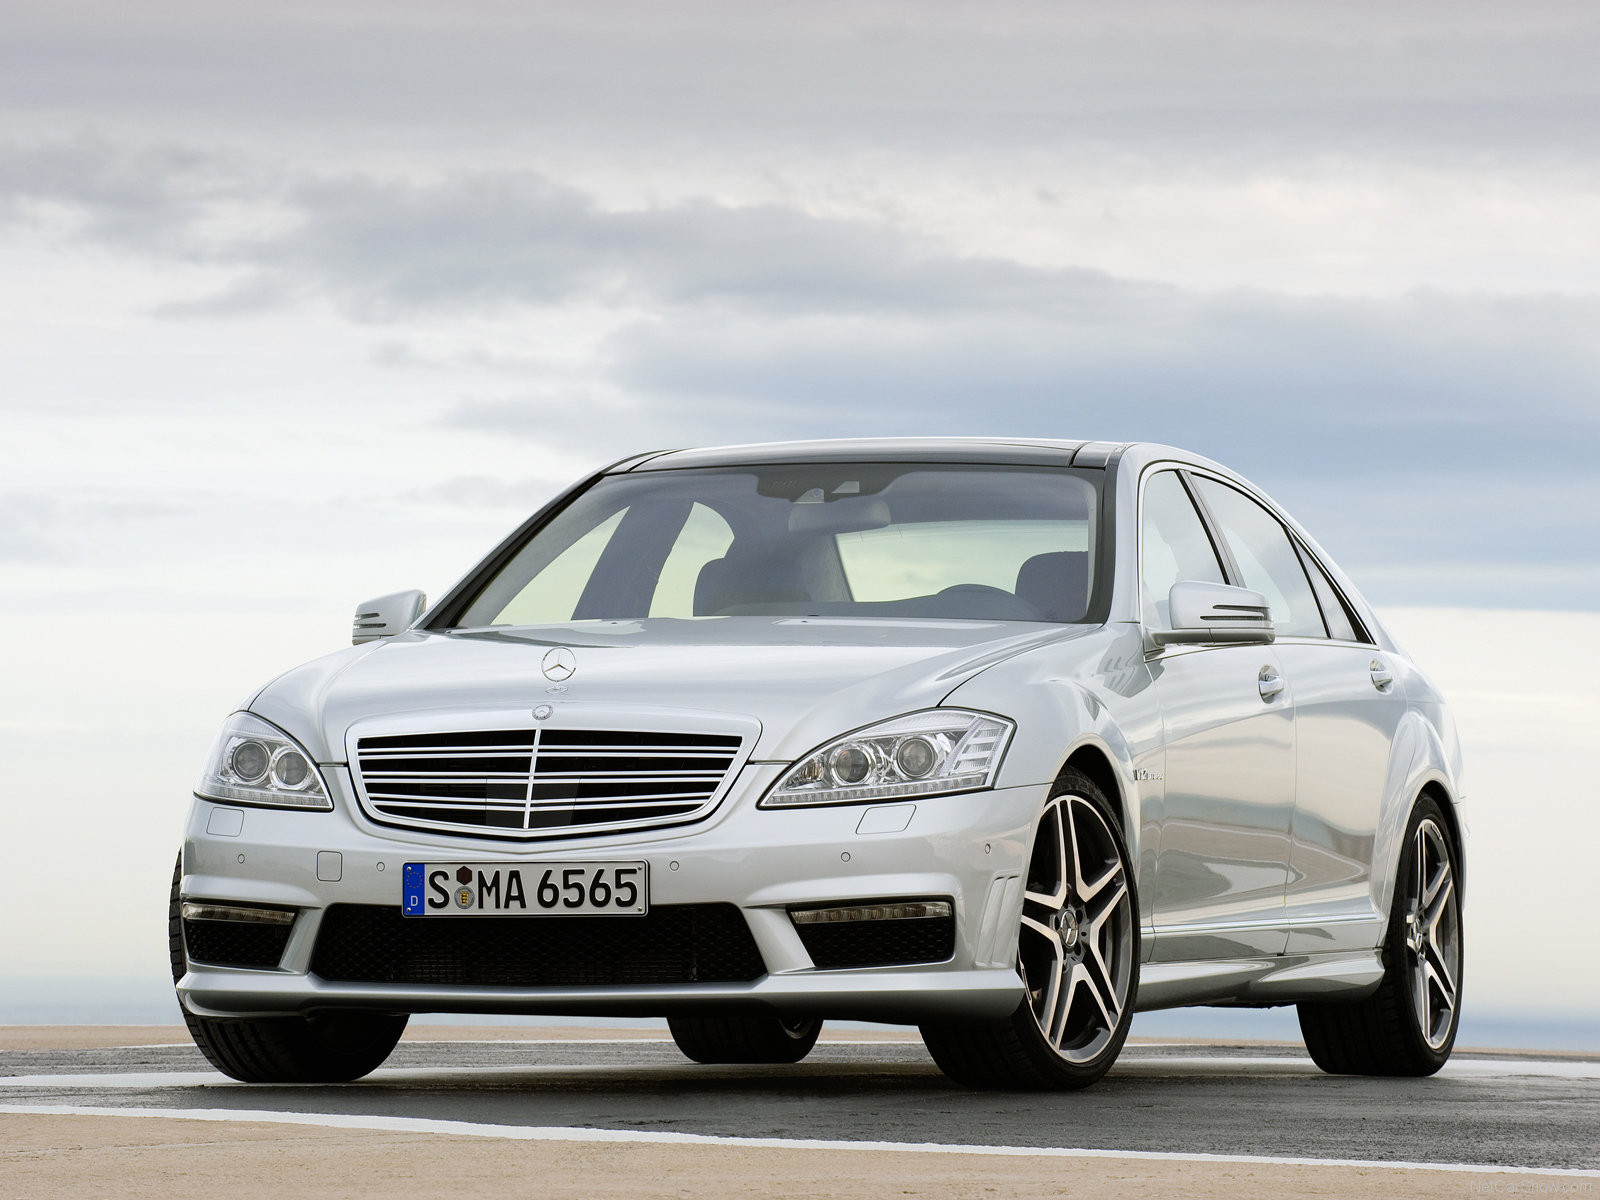 Hot car pictures gallery 2010 mercedes benz s65 amg for Mercedes benz s65 amg